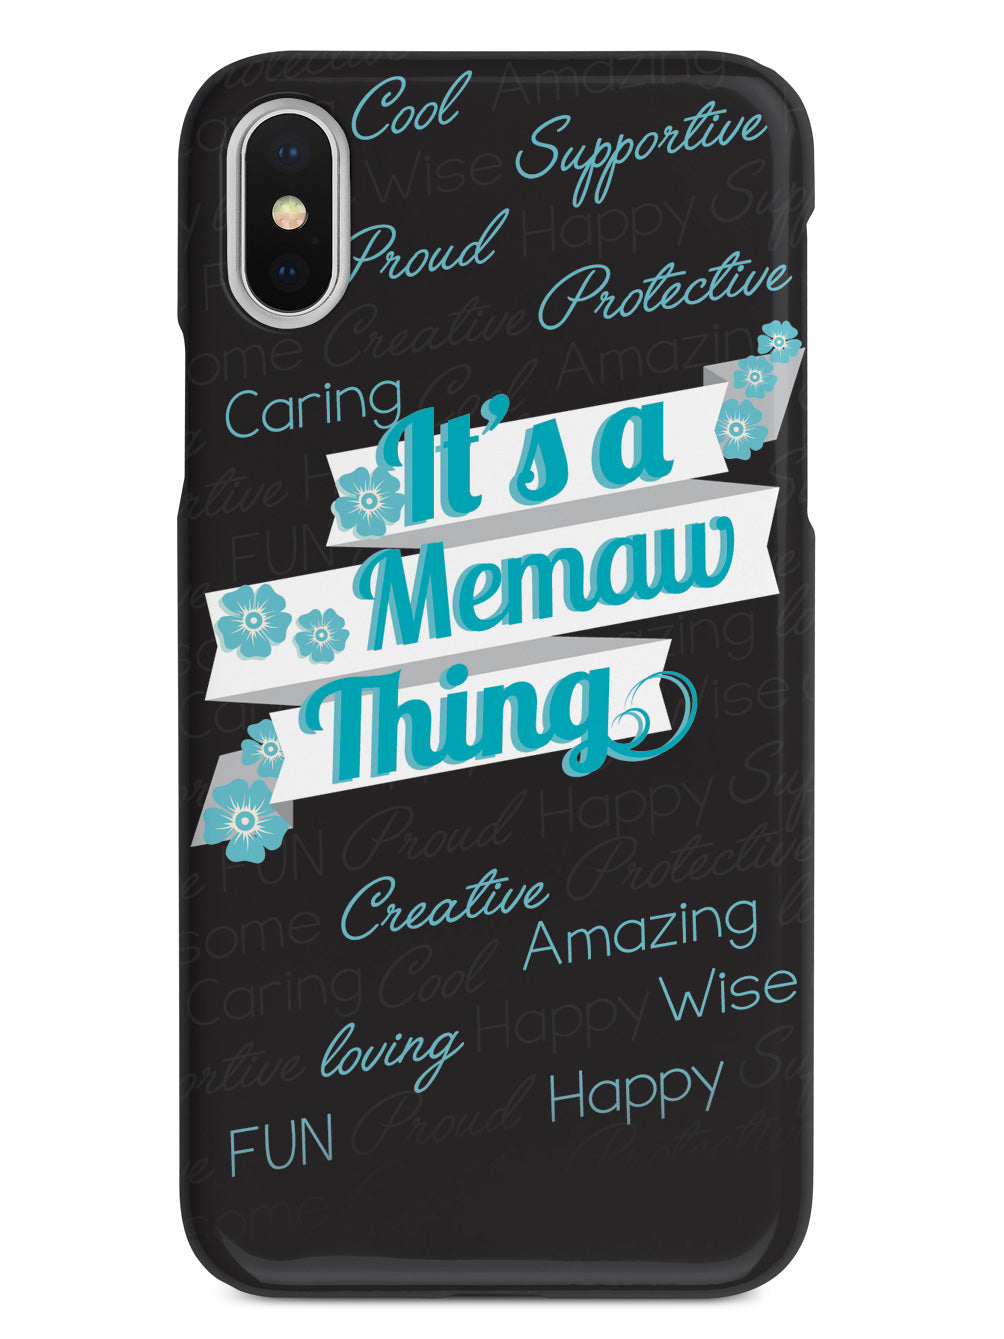 It's a Memaw Thing (Blue) Case